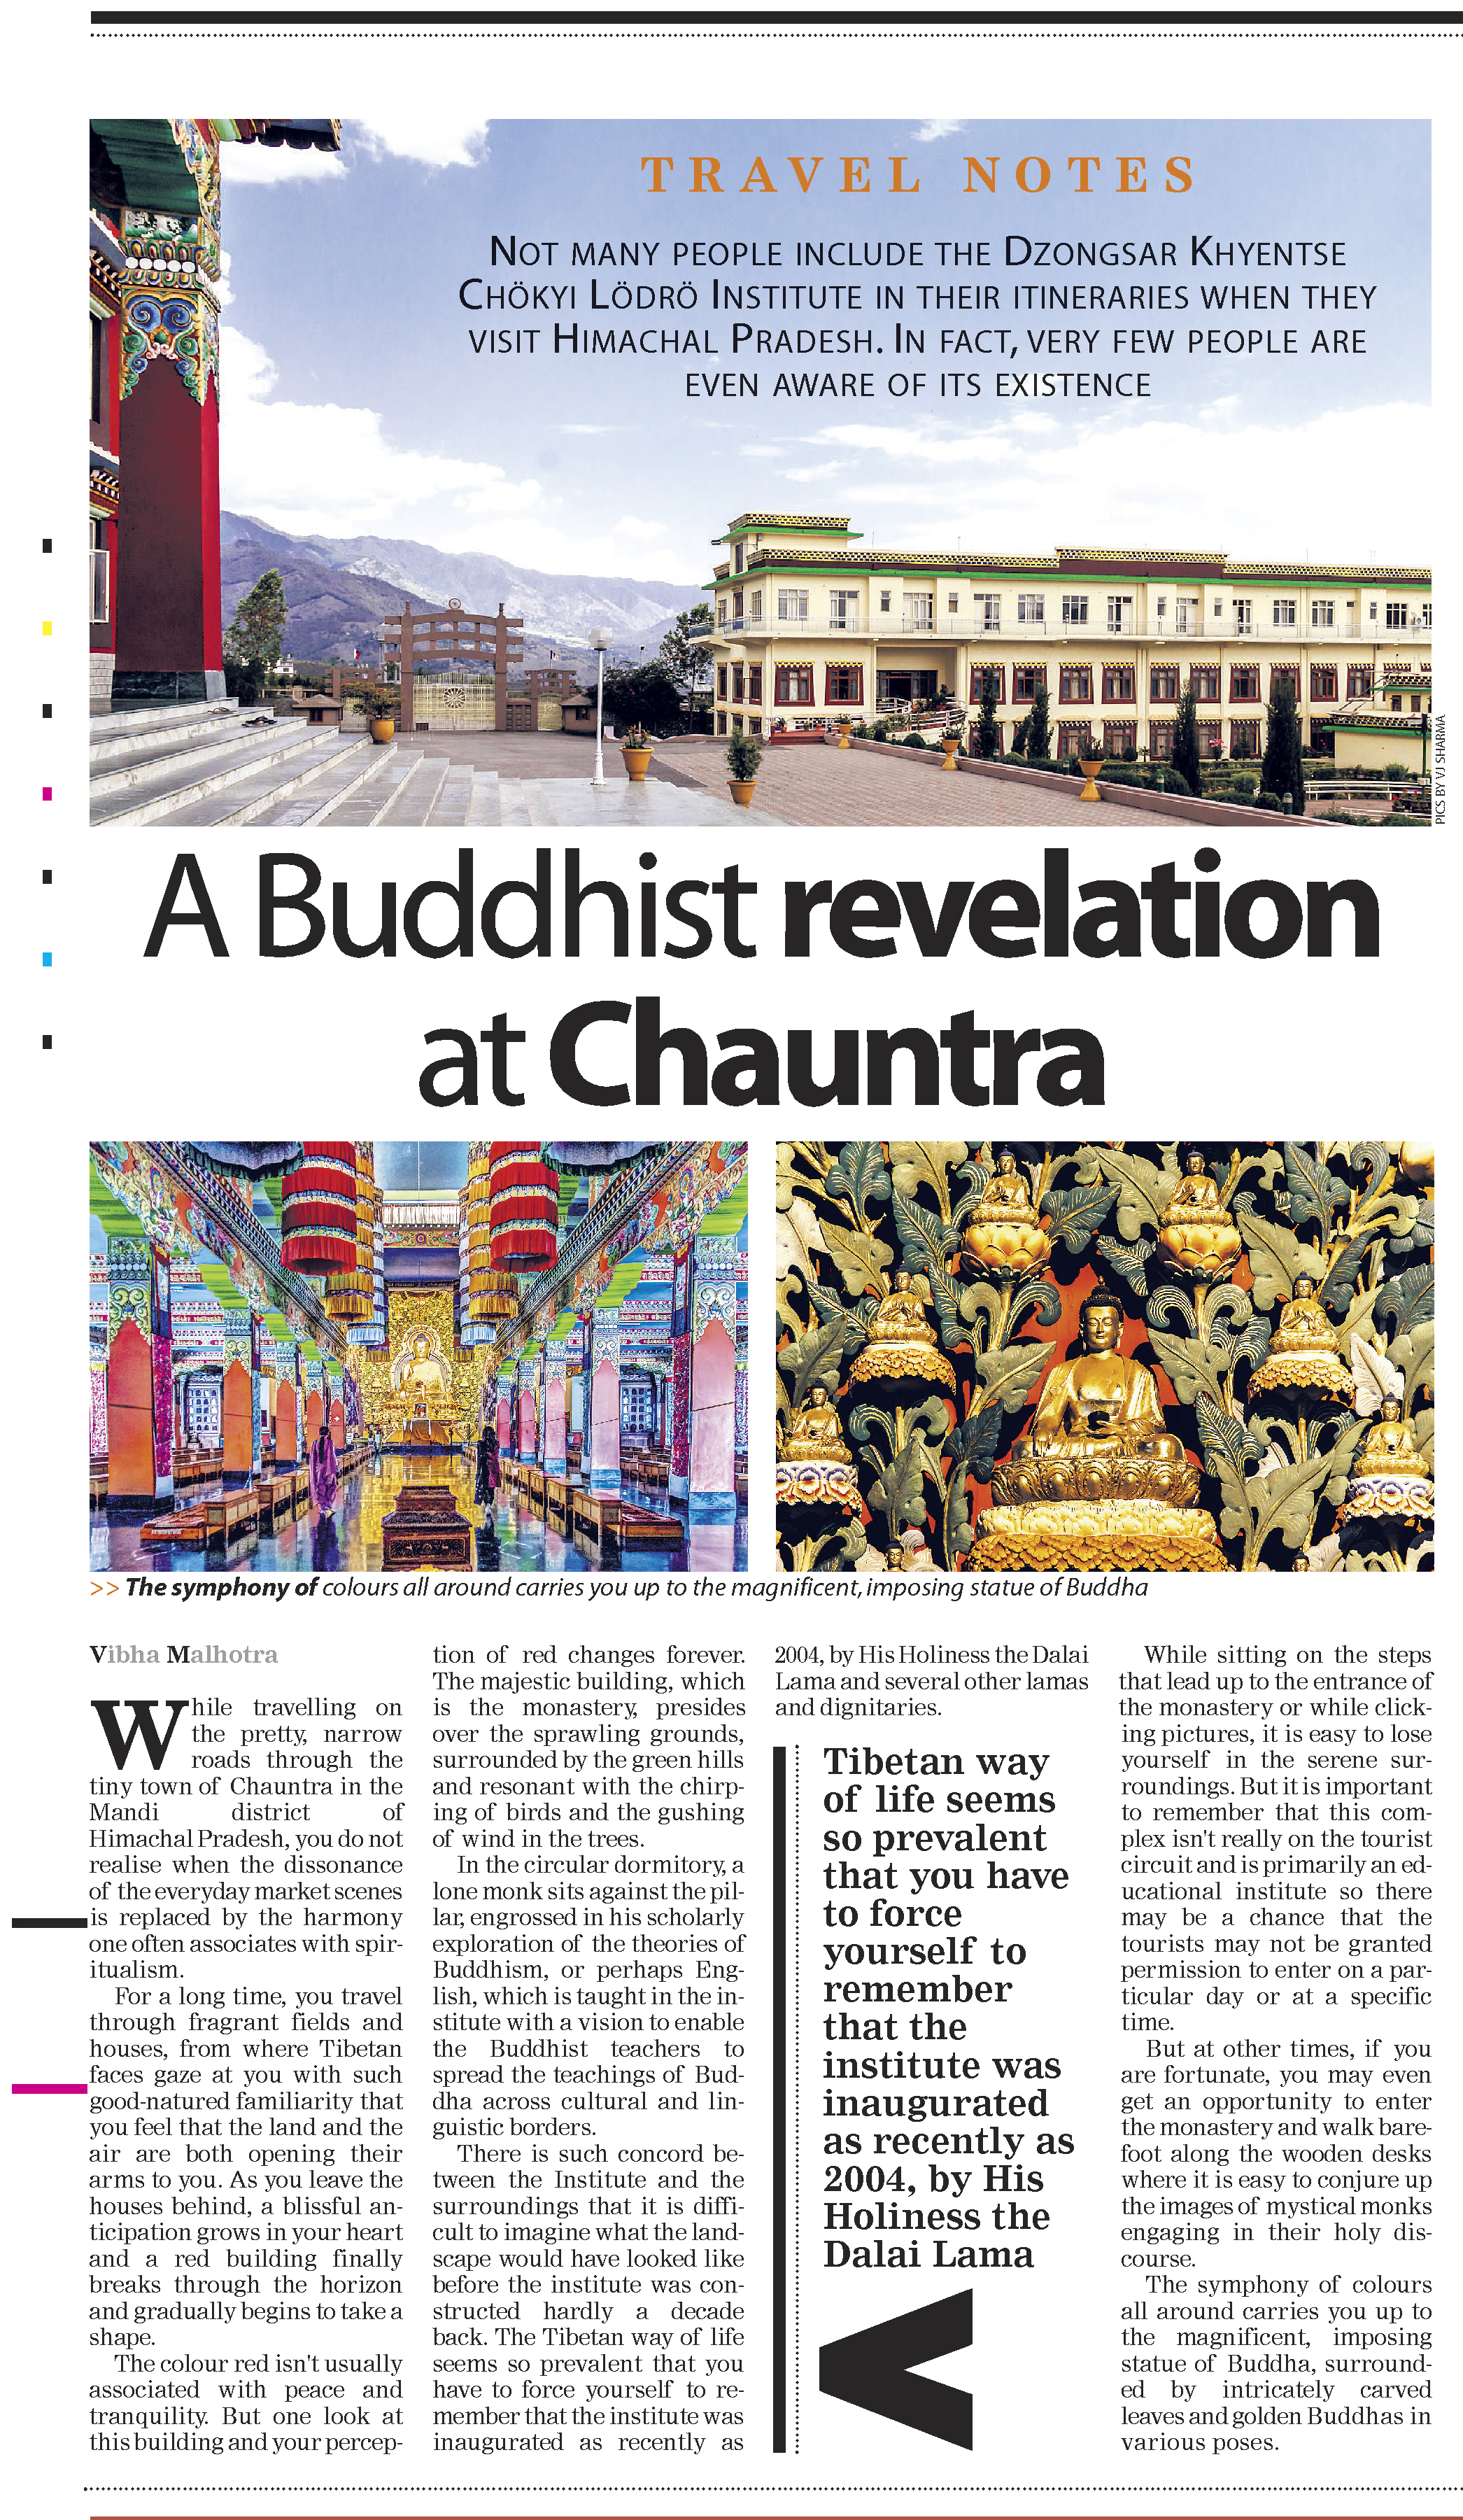 We were fortunate to publish about Dzongsar Khyentse Chökyi Lödrö Institute in Times of India a few years ago and above image is a cutting of newspaper.   Often an unplanned detour opens a whole new world to you, and sometimes a chance visit to an unknown place can change the entire mood of your travel. A traveler will easily identify with these feelings. Not many people include the Dzongsar Khyentse Chökyi Lödrö Institute in their itineraries when they visit Himachal pradesh. In fact, very few people are even aware of its existence.